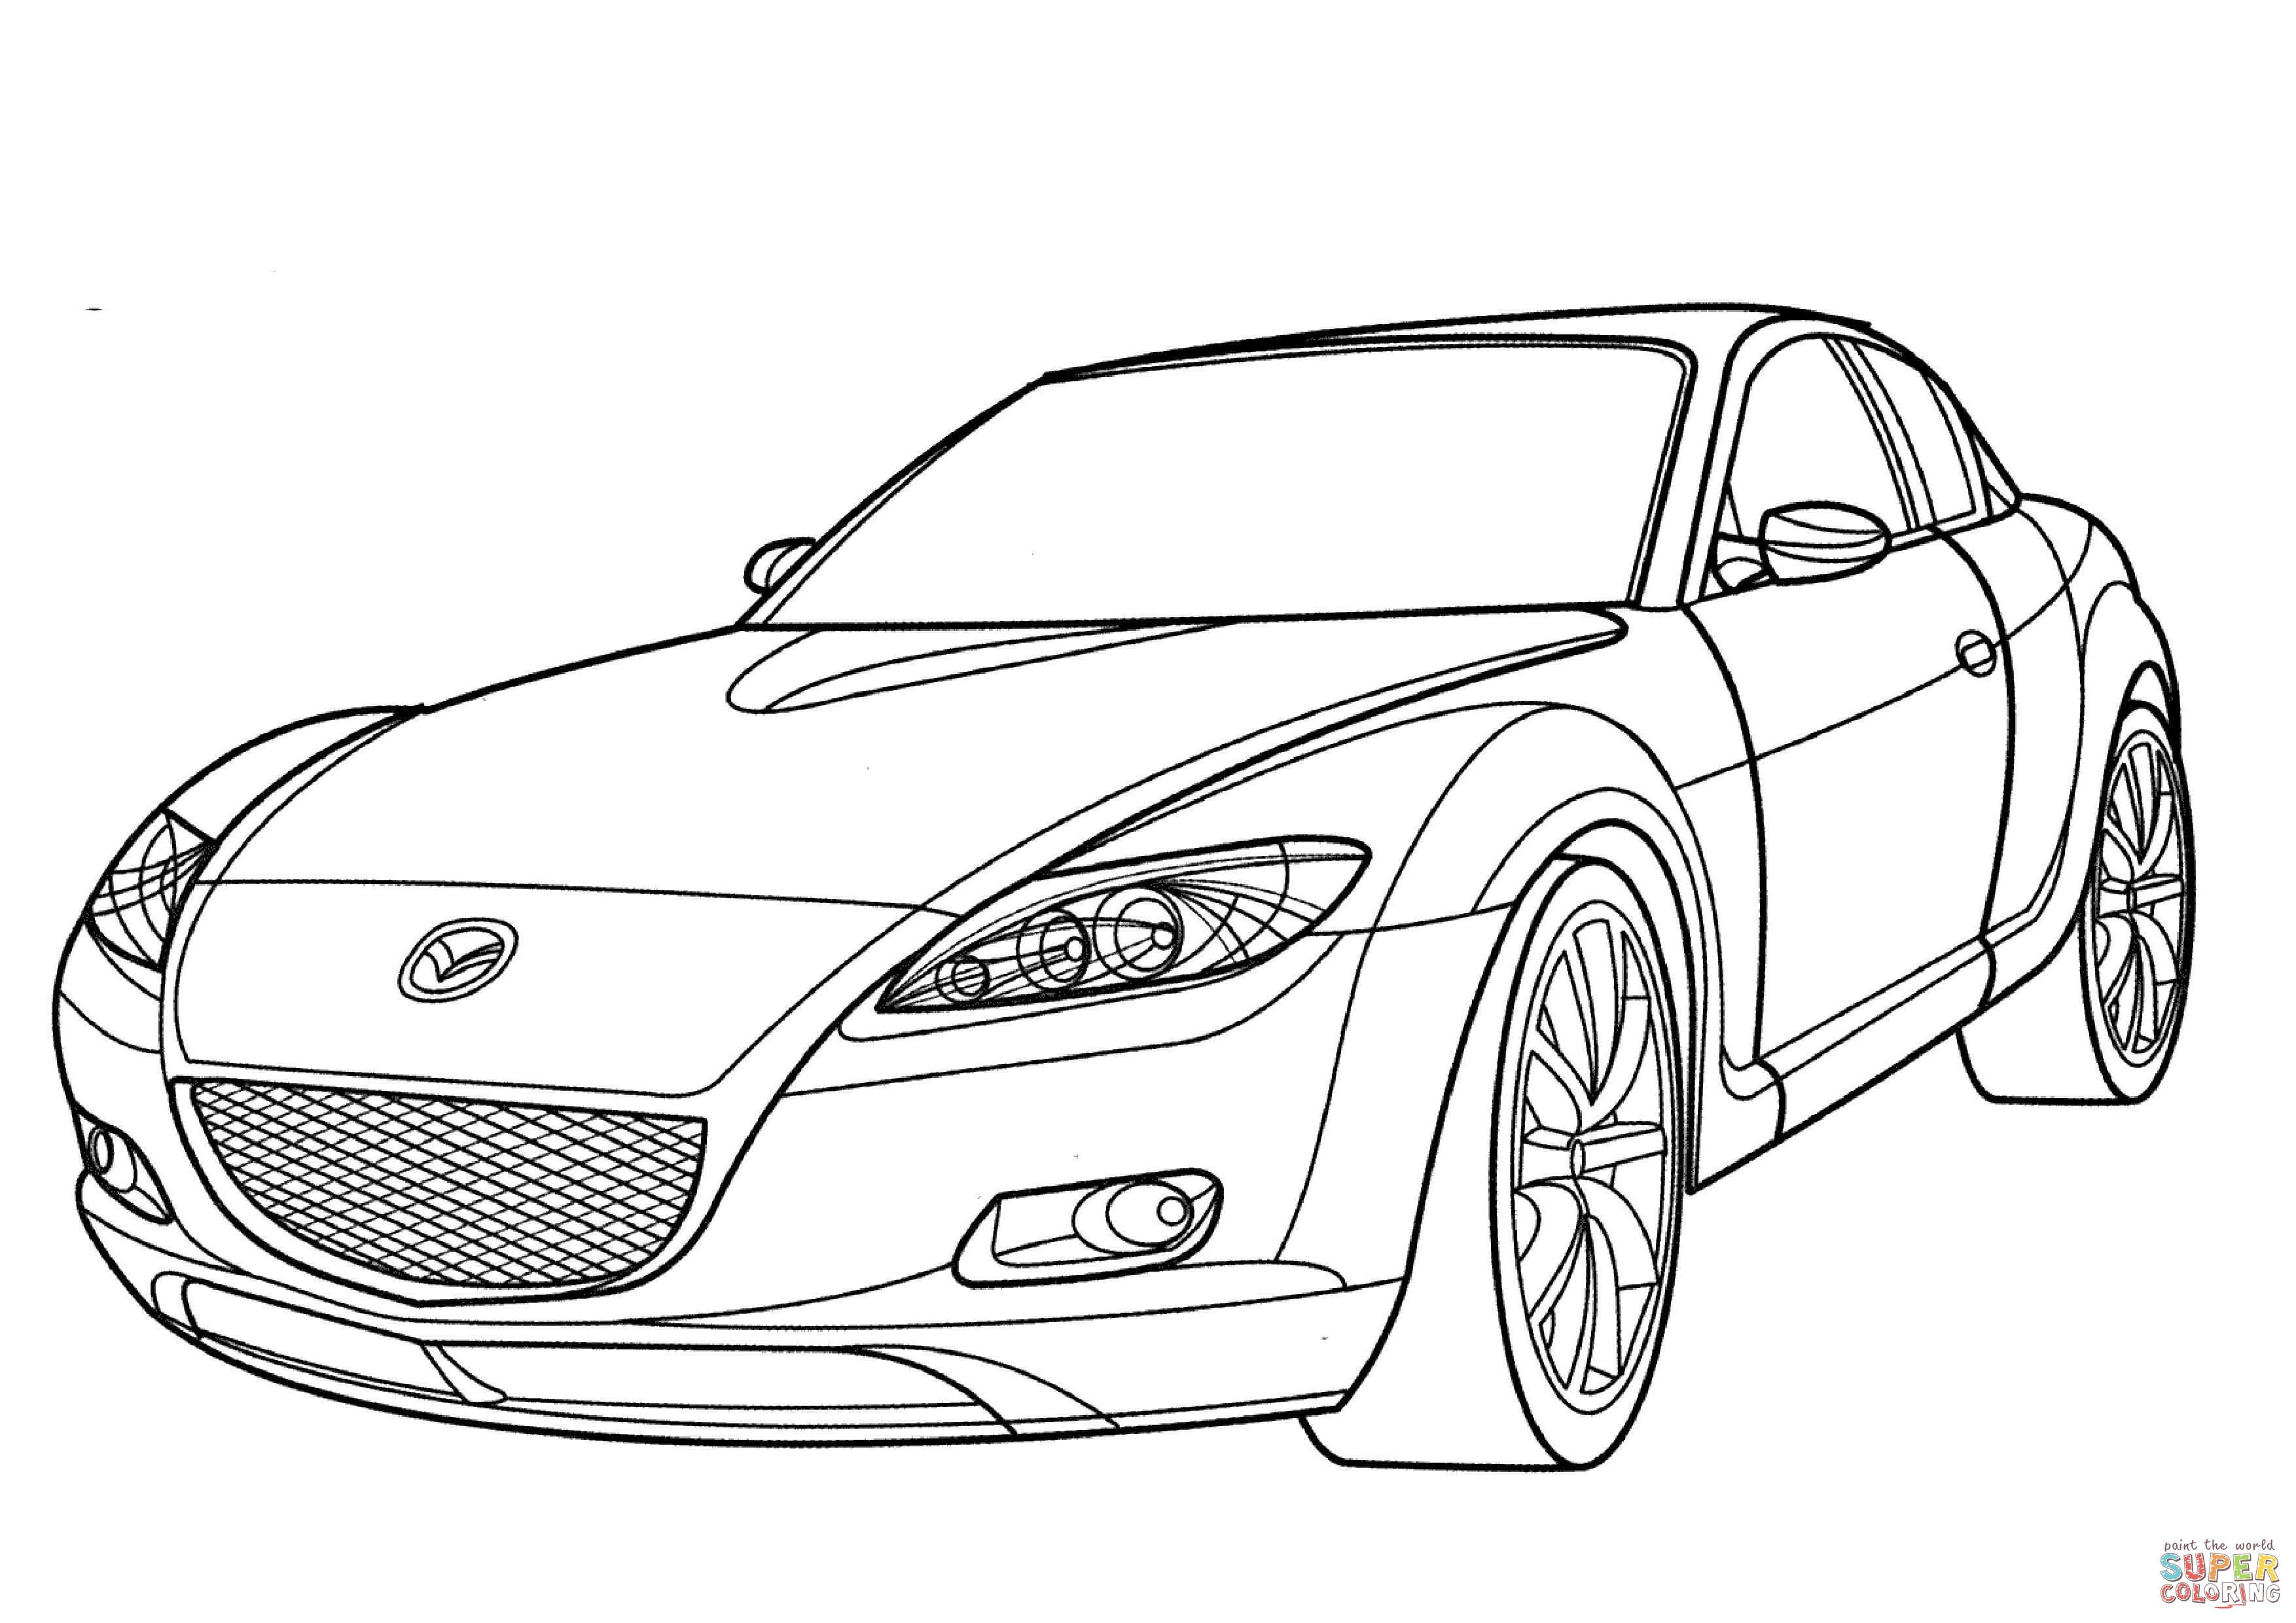 3508x2480 mazda rx 8 coloring page free printable coloring pages